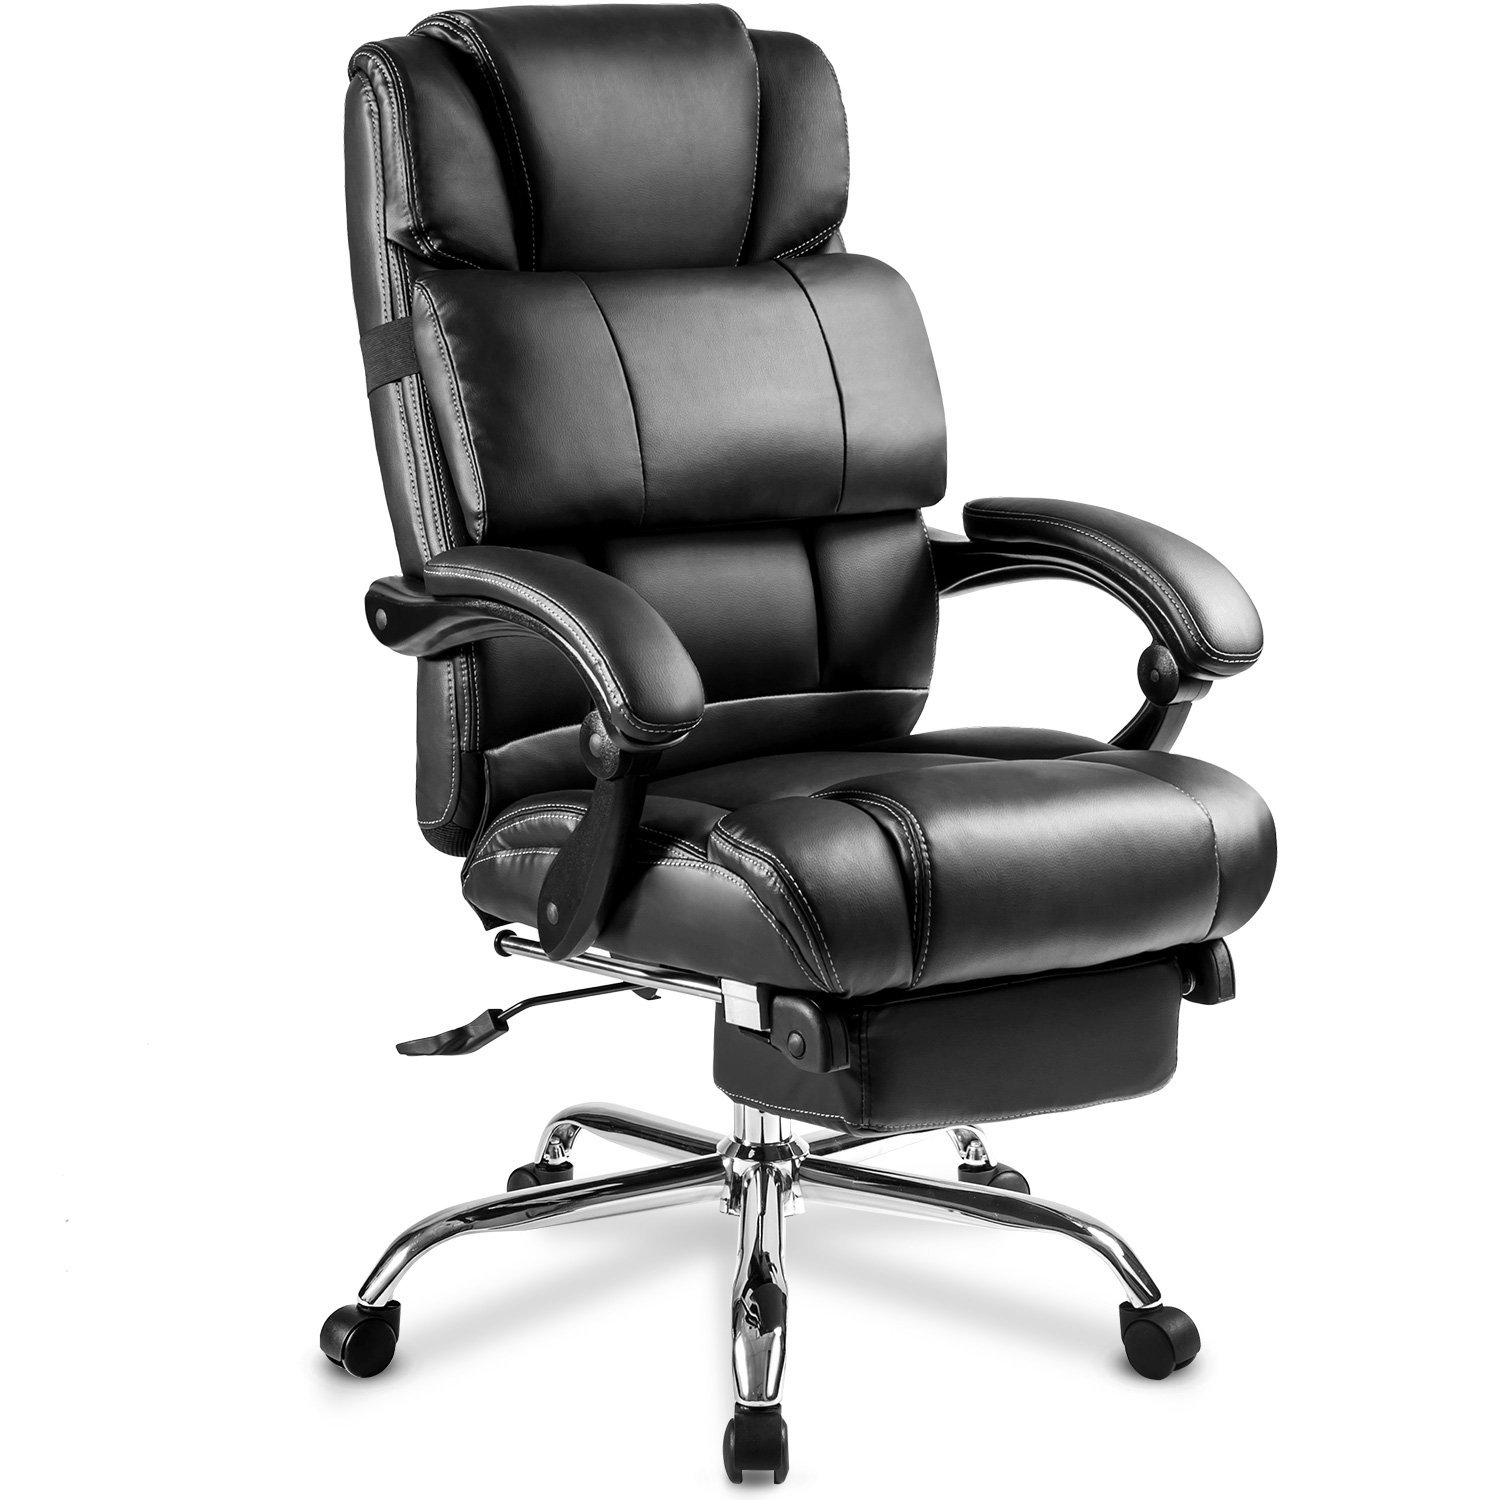 Merax Ergonomic Leather Big & Tall Office Chair with Footrest, Black -  Traveller Location